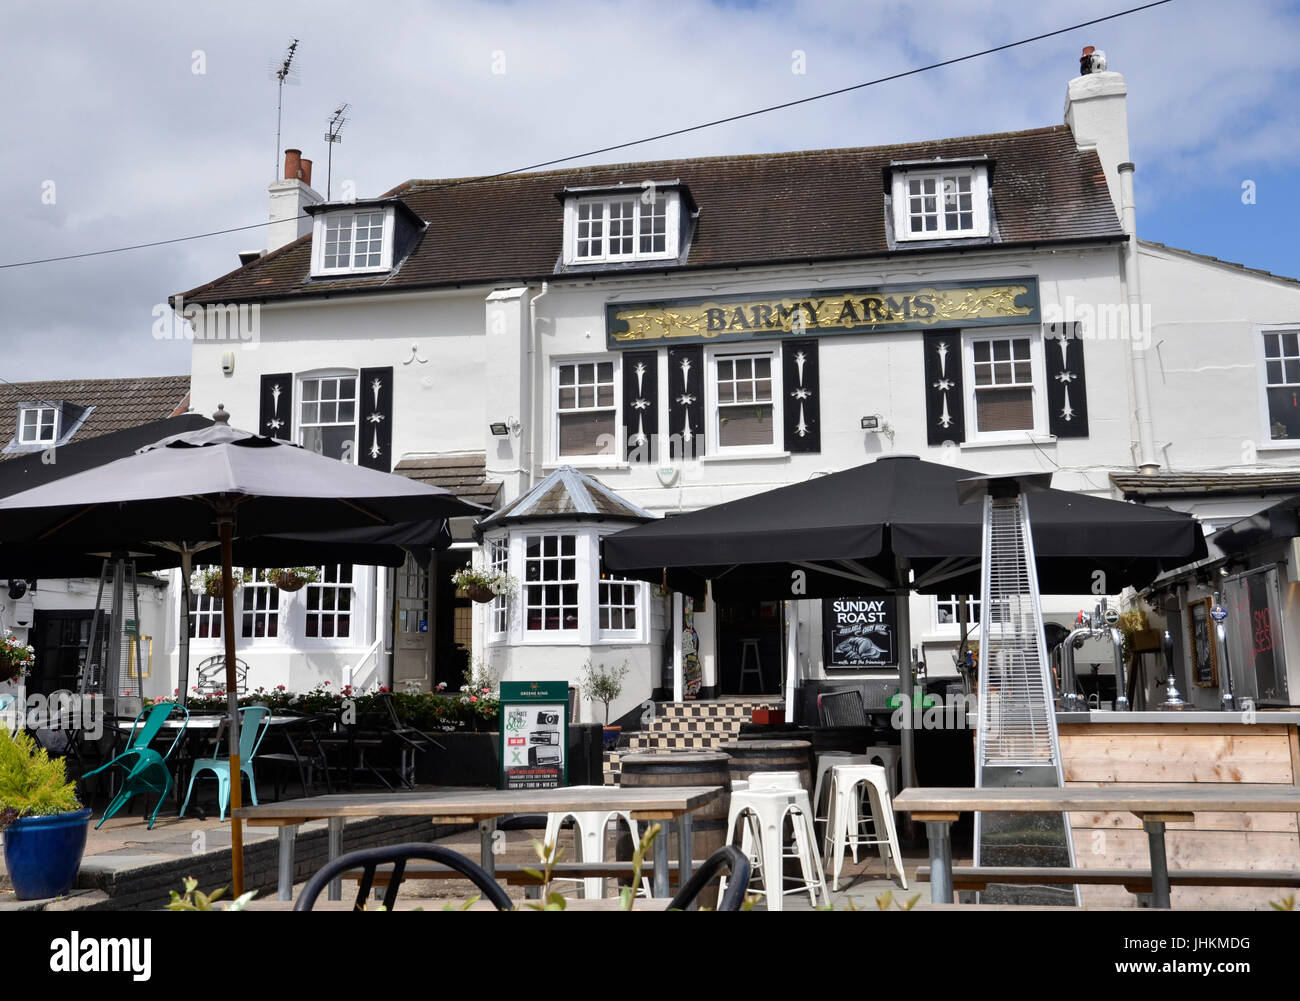 The Barmy Arms public house on the River Thames in Twickenham, London - Stock Image